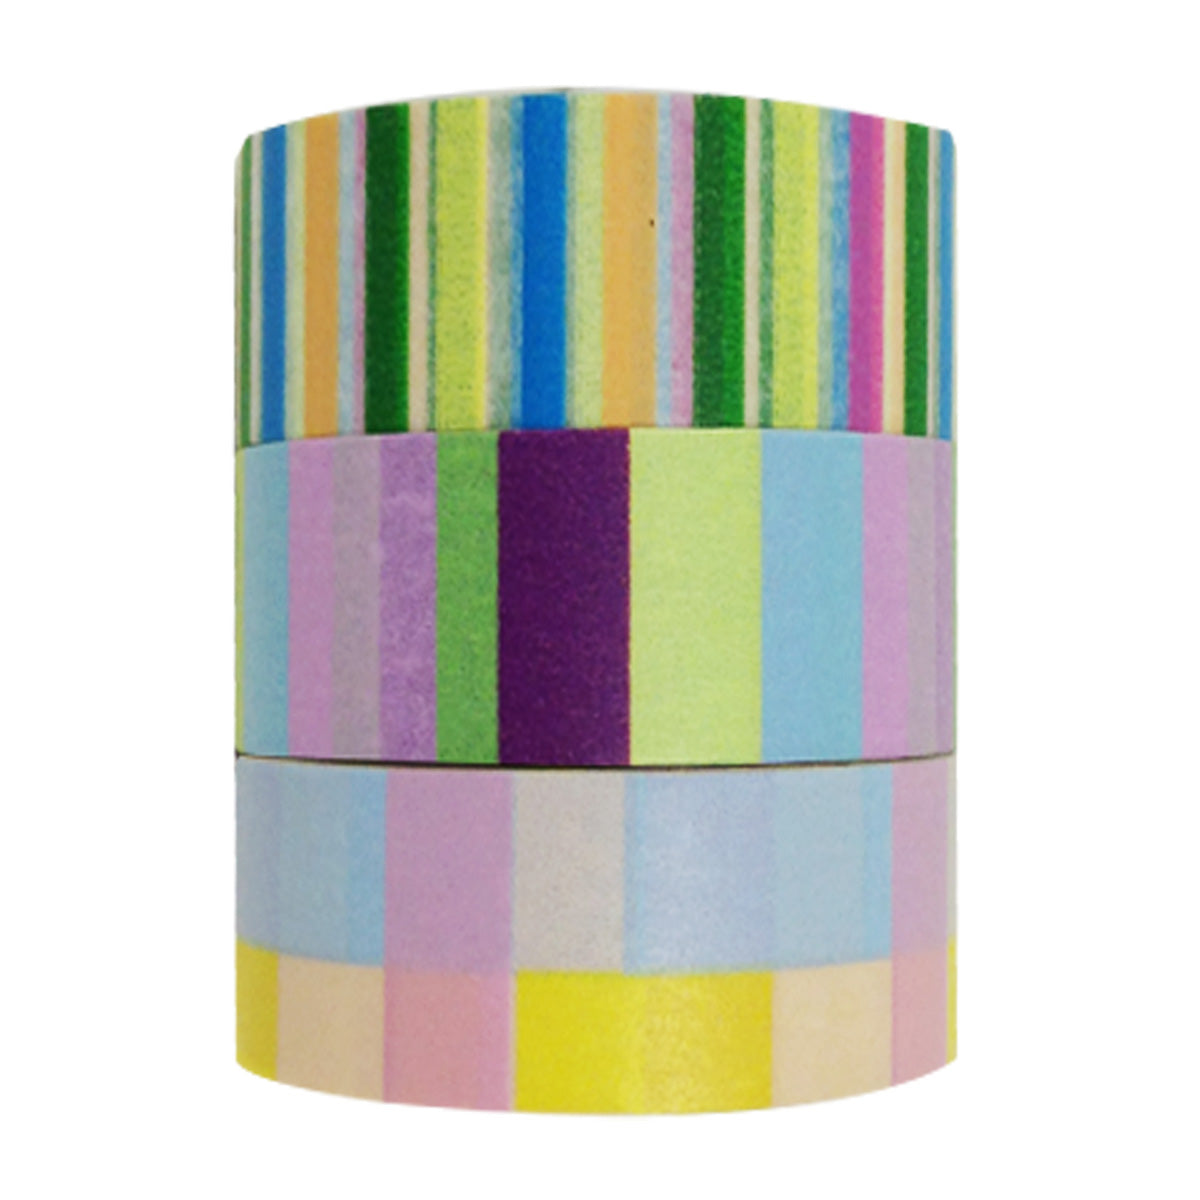 Wrapables Three of Us Washi Masking Tape (set of 3)